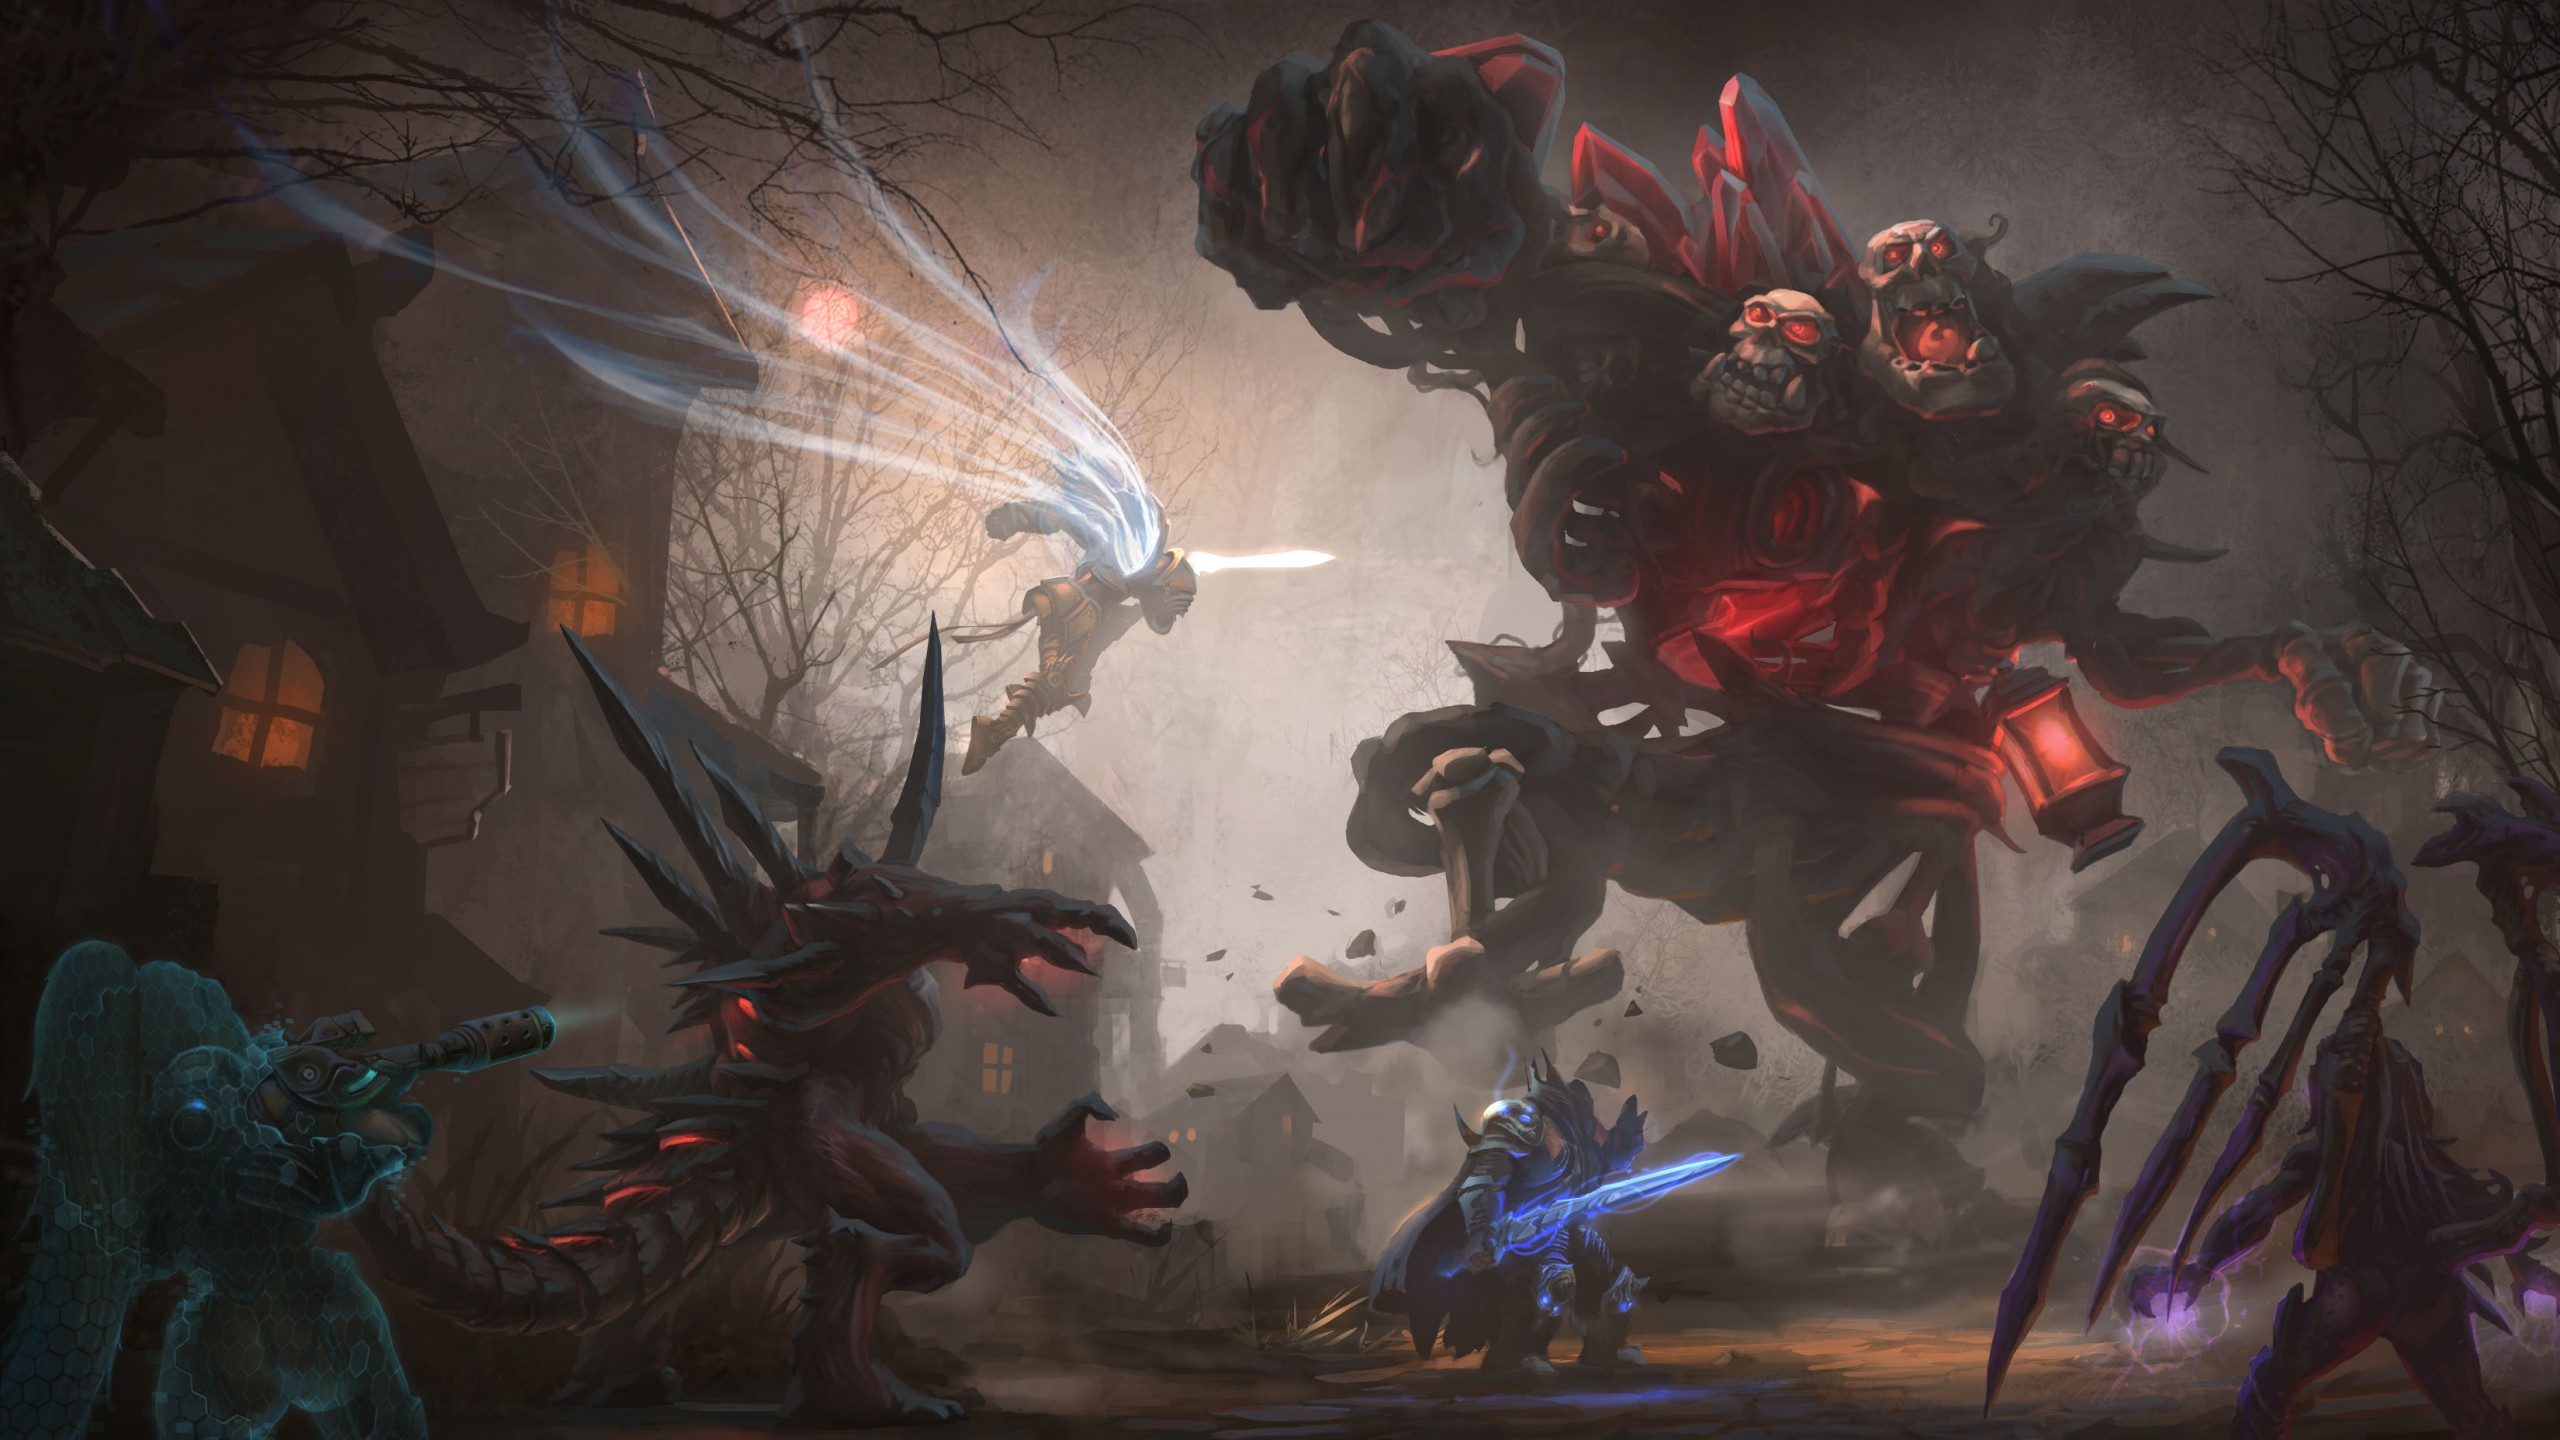 Wallpaper Heroes Of The Storm 2015 Game Fantasy Pc Art 3887